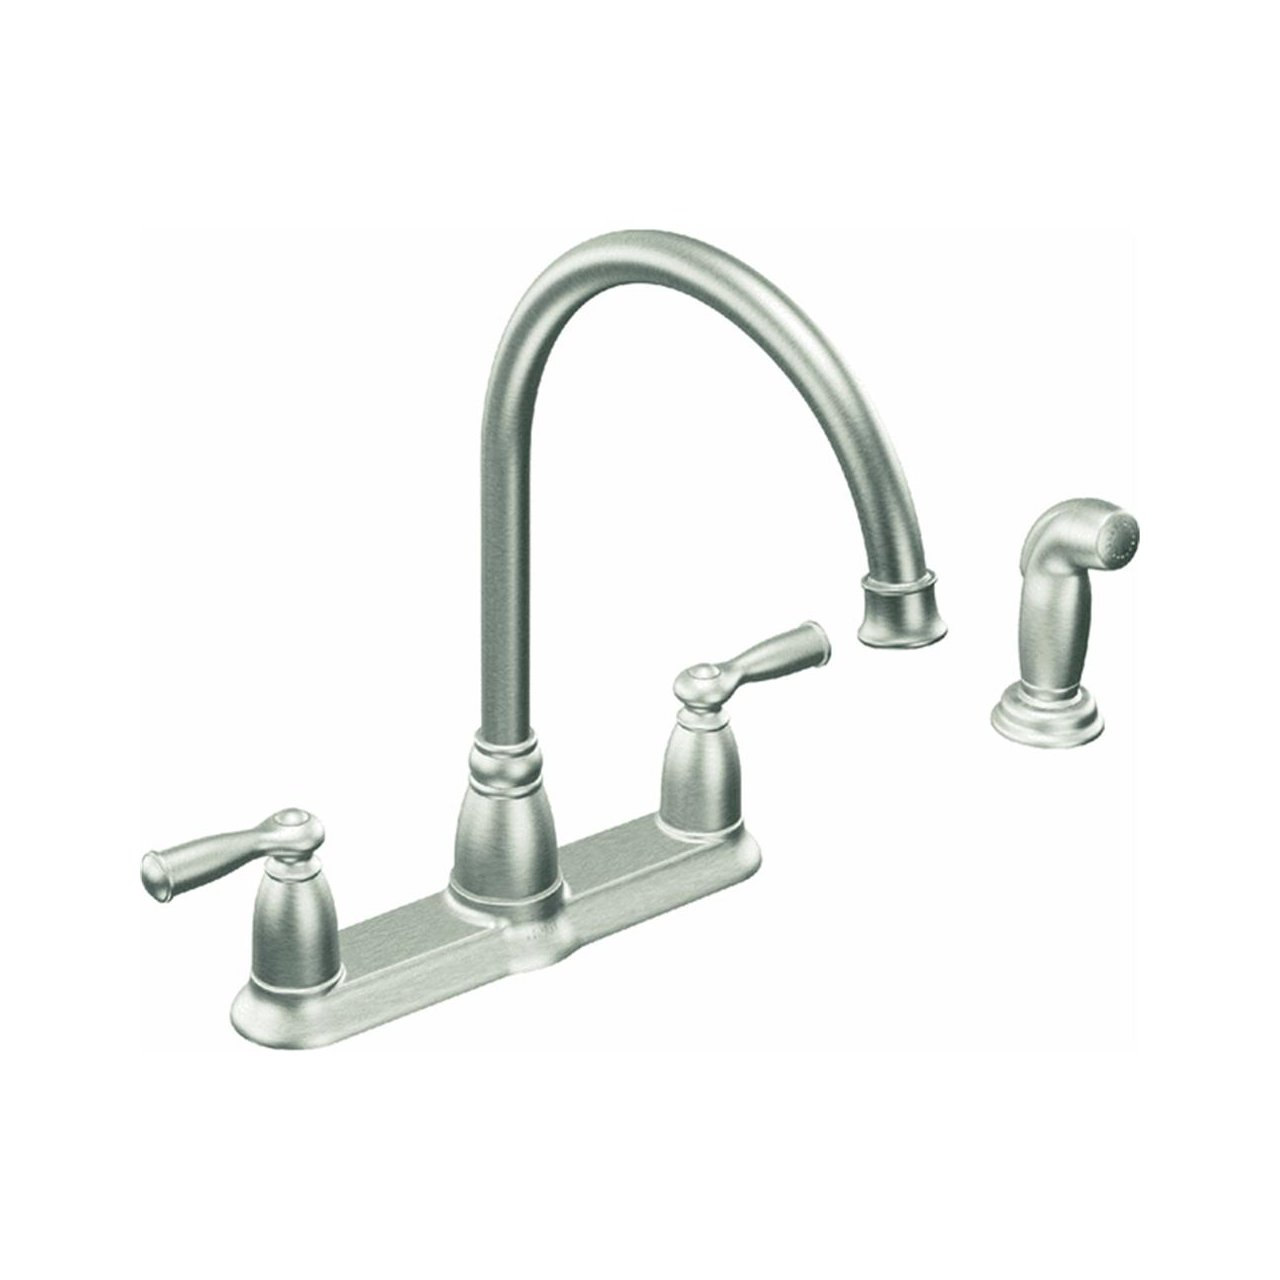 reflex single spot pull kleo power p and down faucet in moen faucets sprayer with stainless kitchen handle resist clean